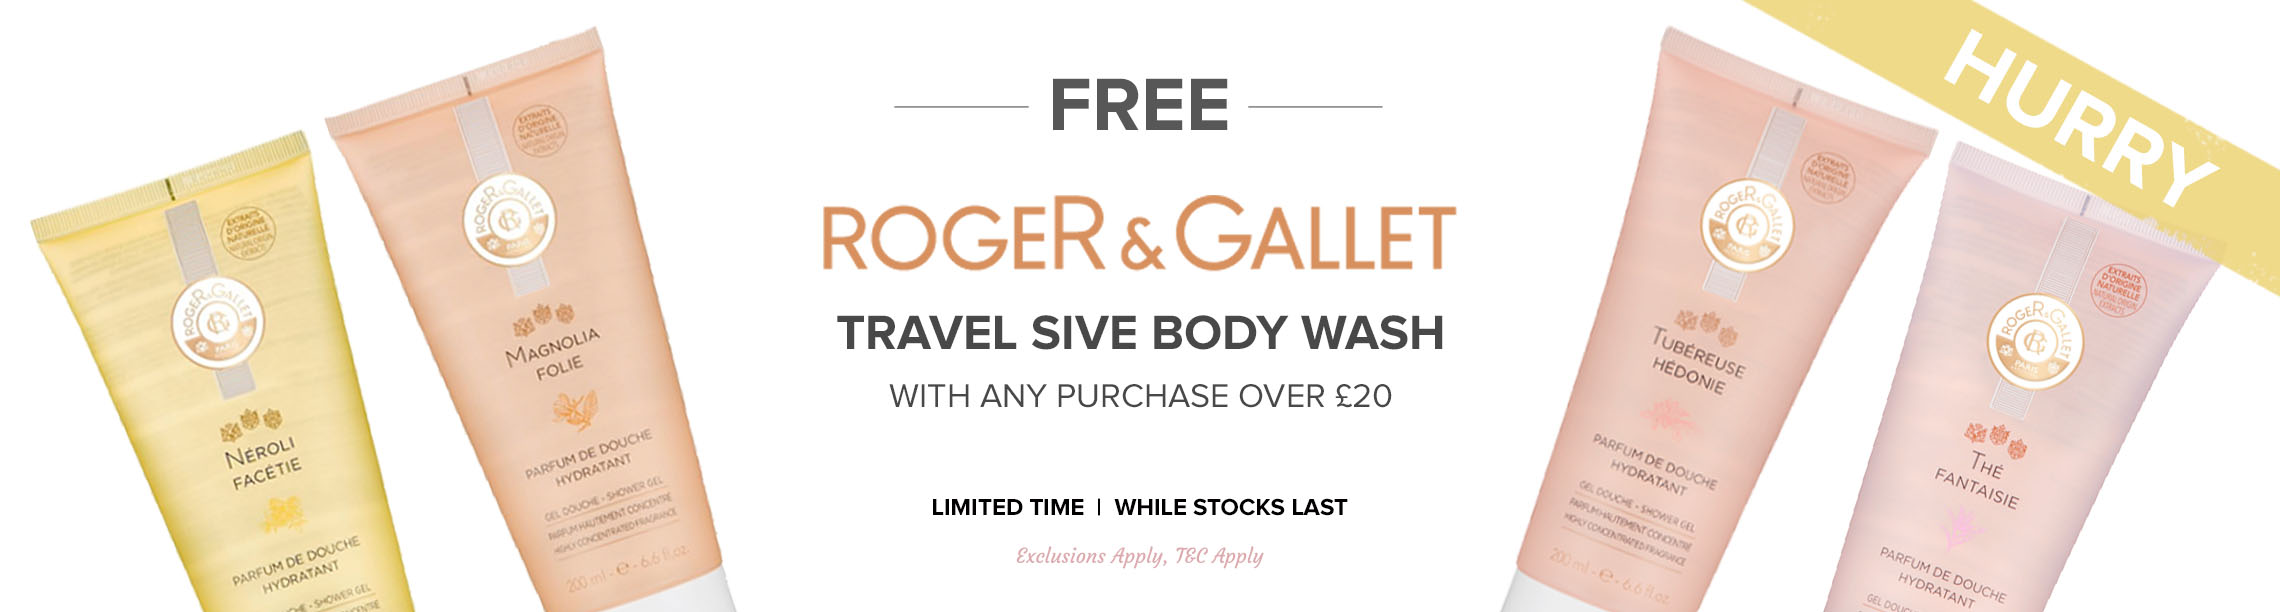 Free Roger & Gallet Travel Size Body Wash